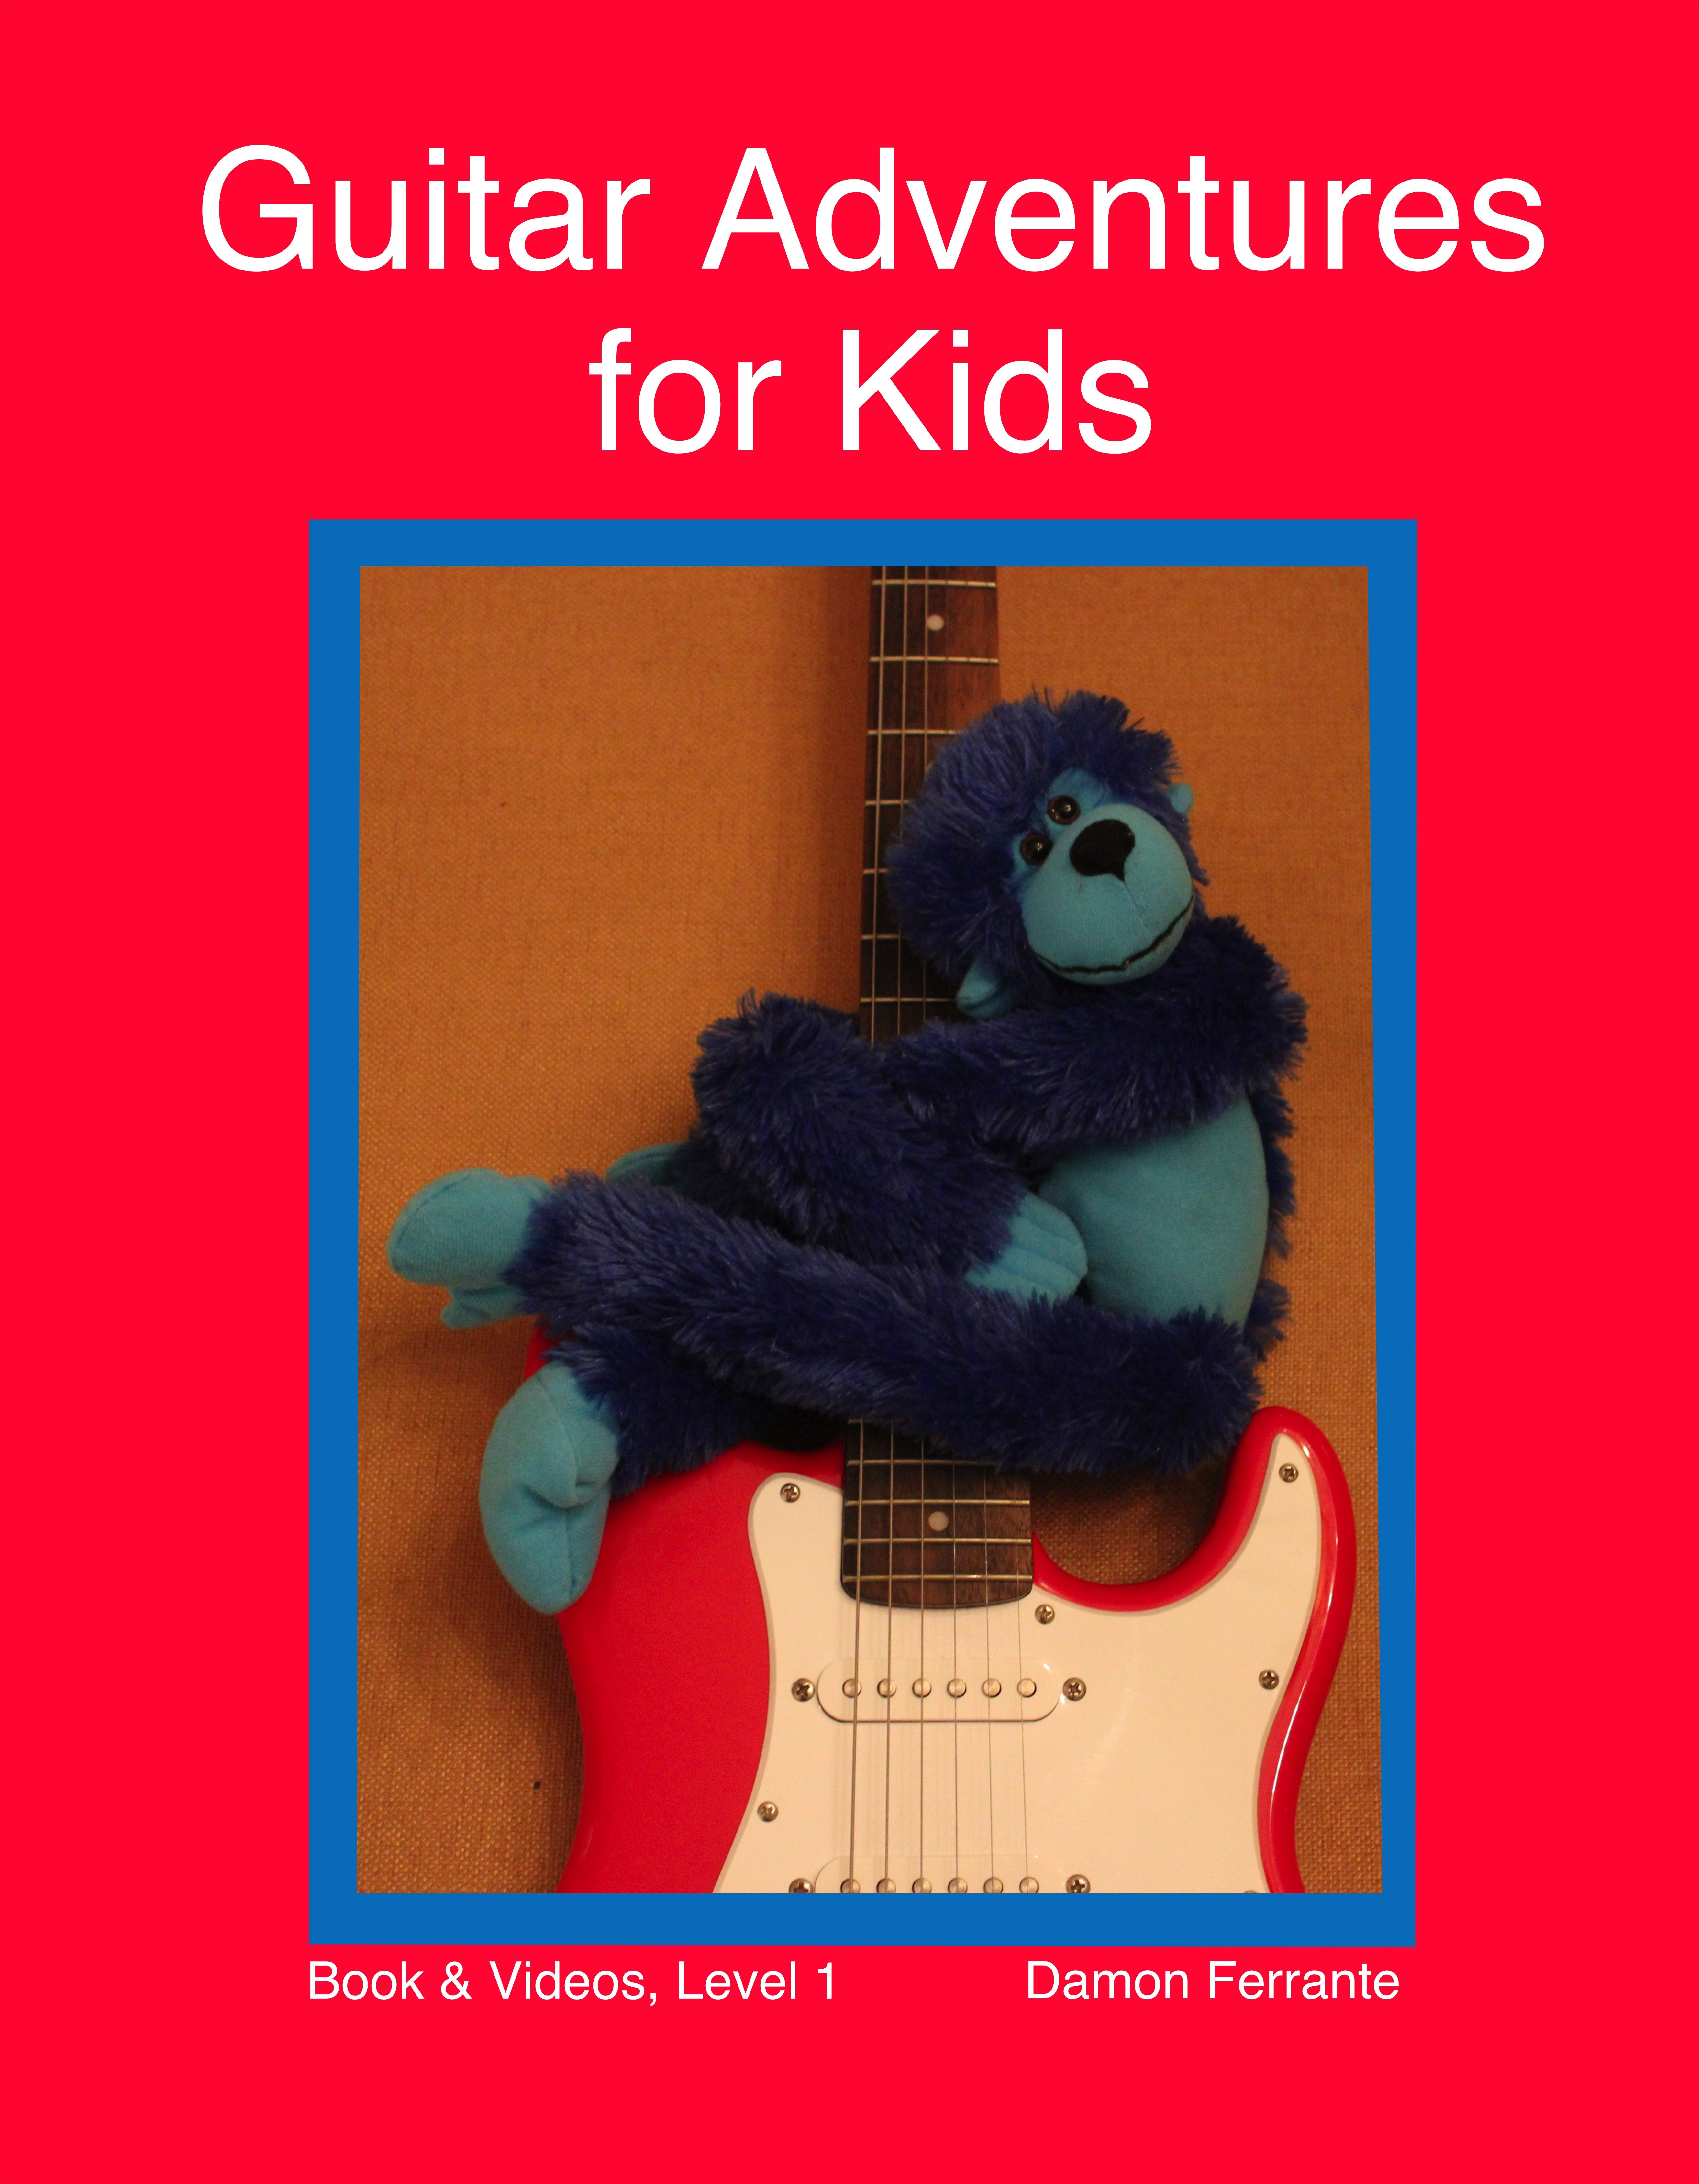 Great Guitar Book Video Course For Homeschool Kids Http Www Steeplechasemusic Com Purchase Html Guitar Kids Music Lessons For Kids Guitar Lessons For Kids